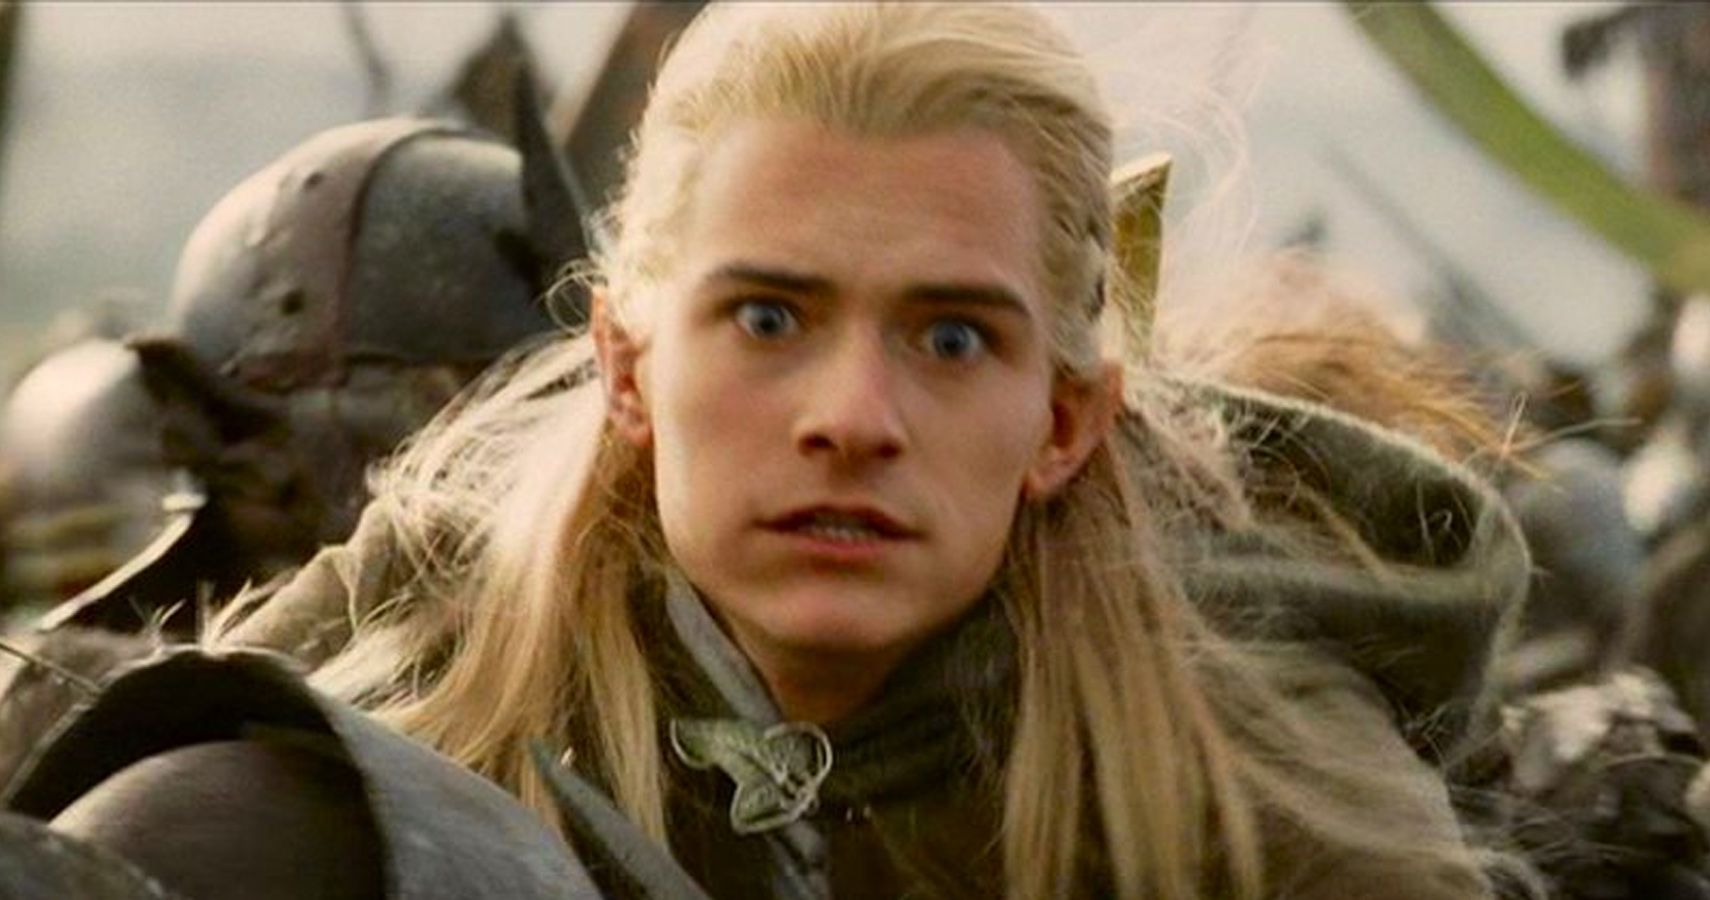 Lord Of The Rings: 25 Ridiculous Things About Legolas That